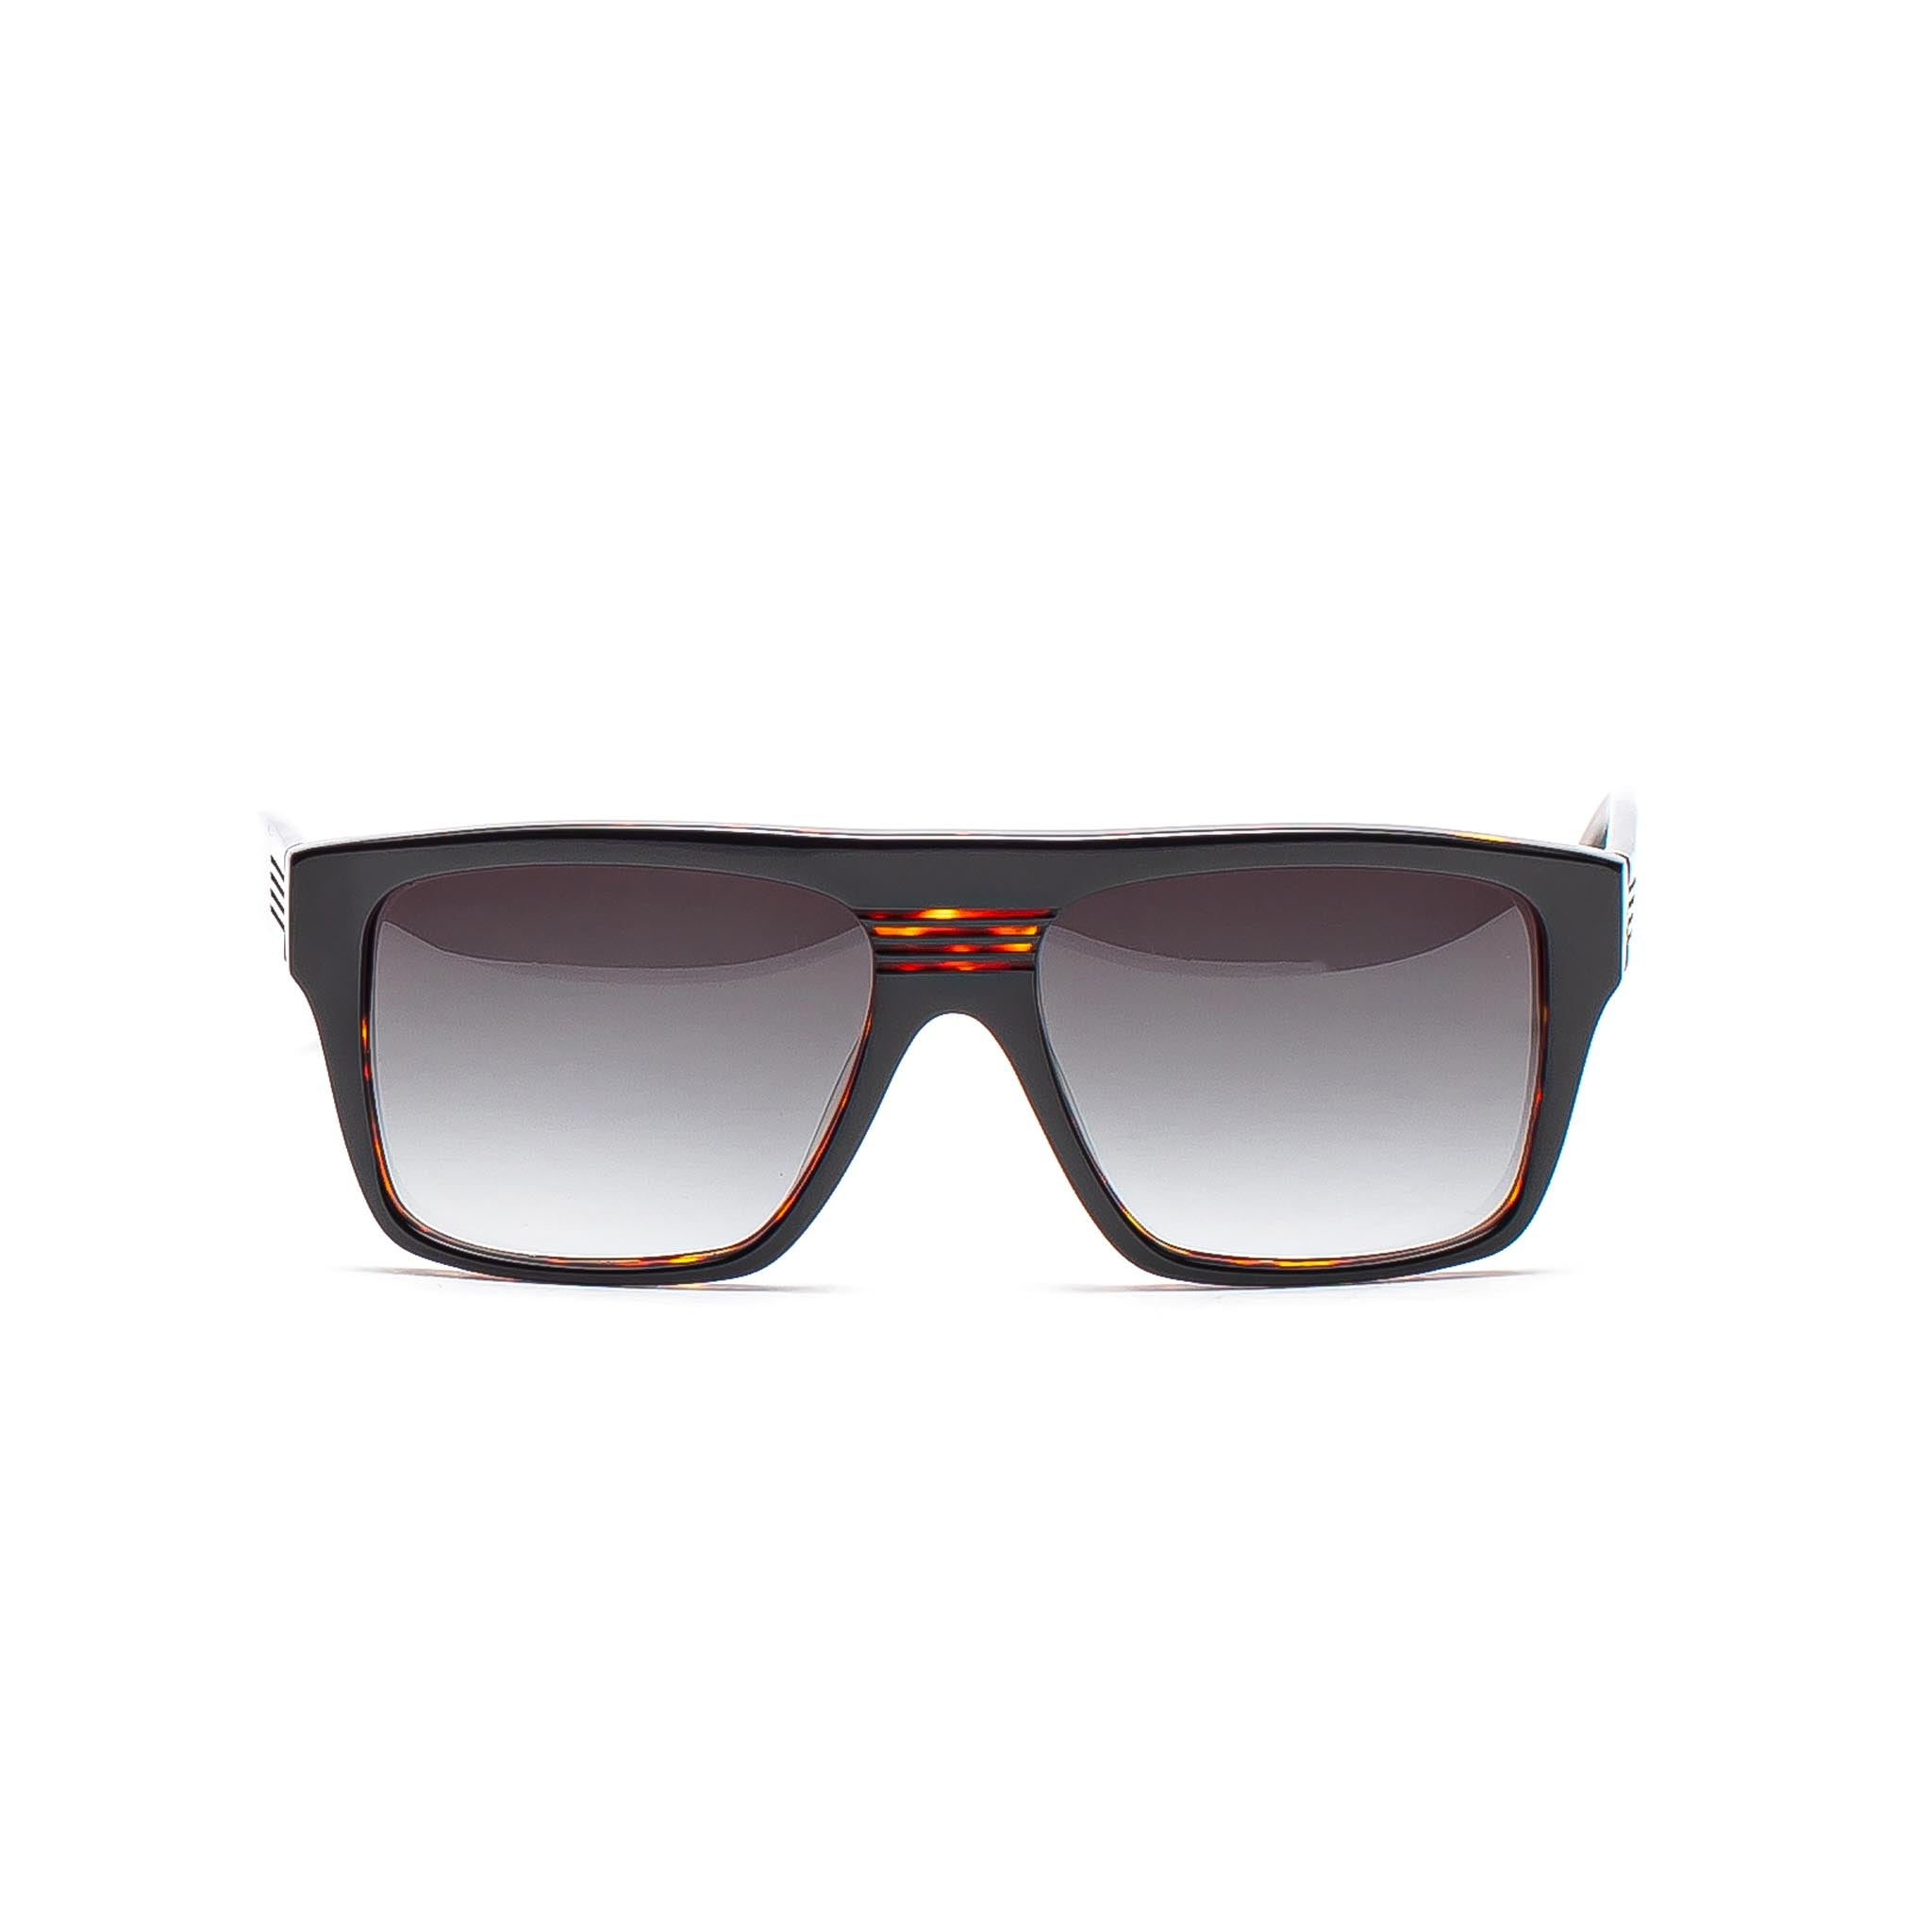 HOMME+ HP013 Sunglasses Black